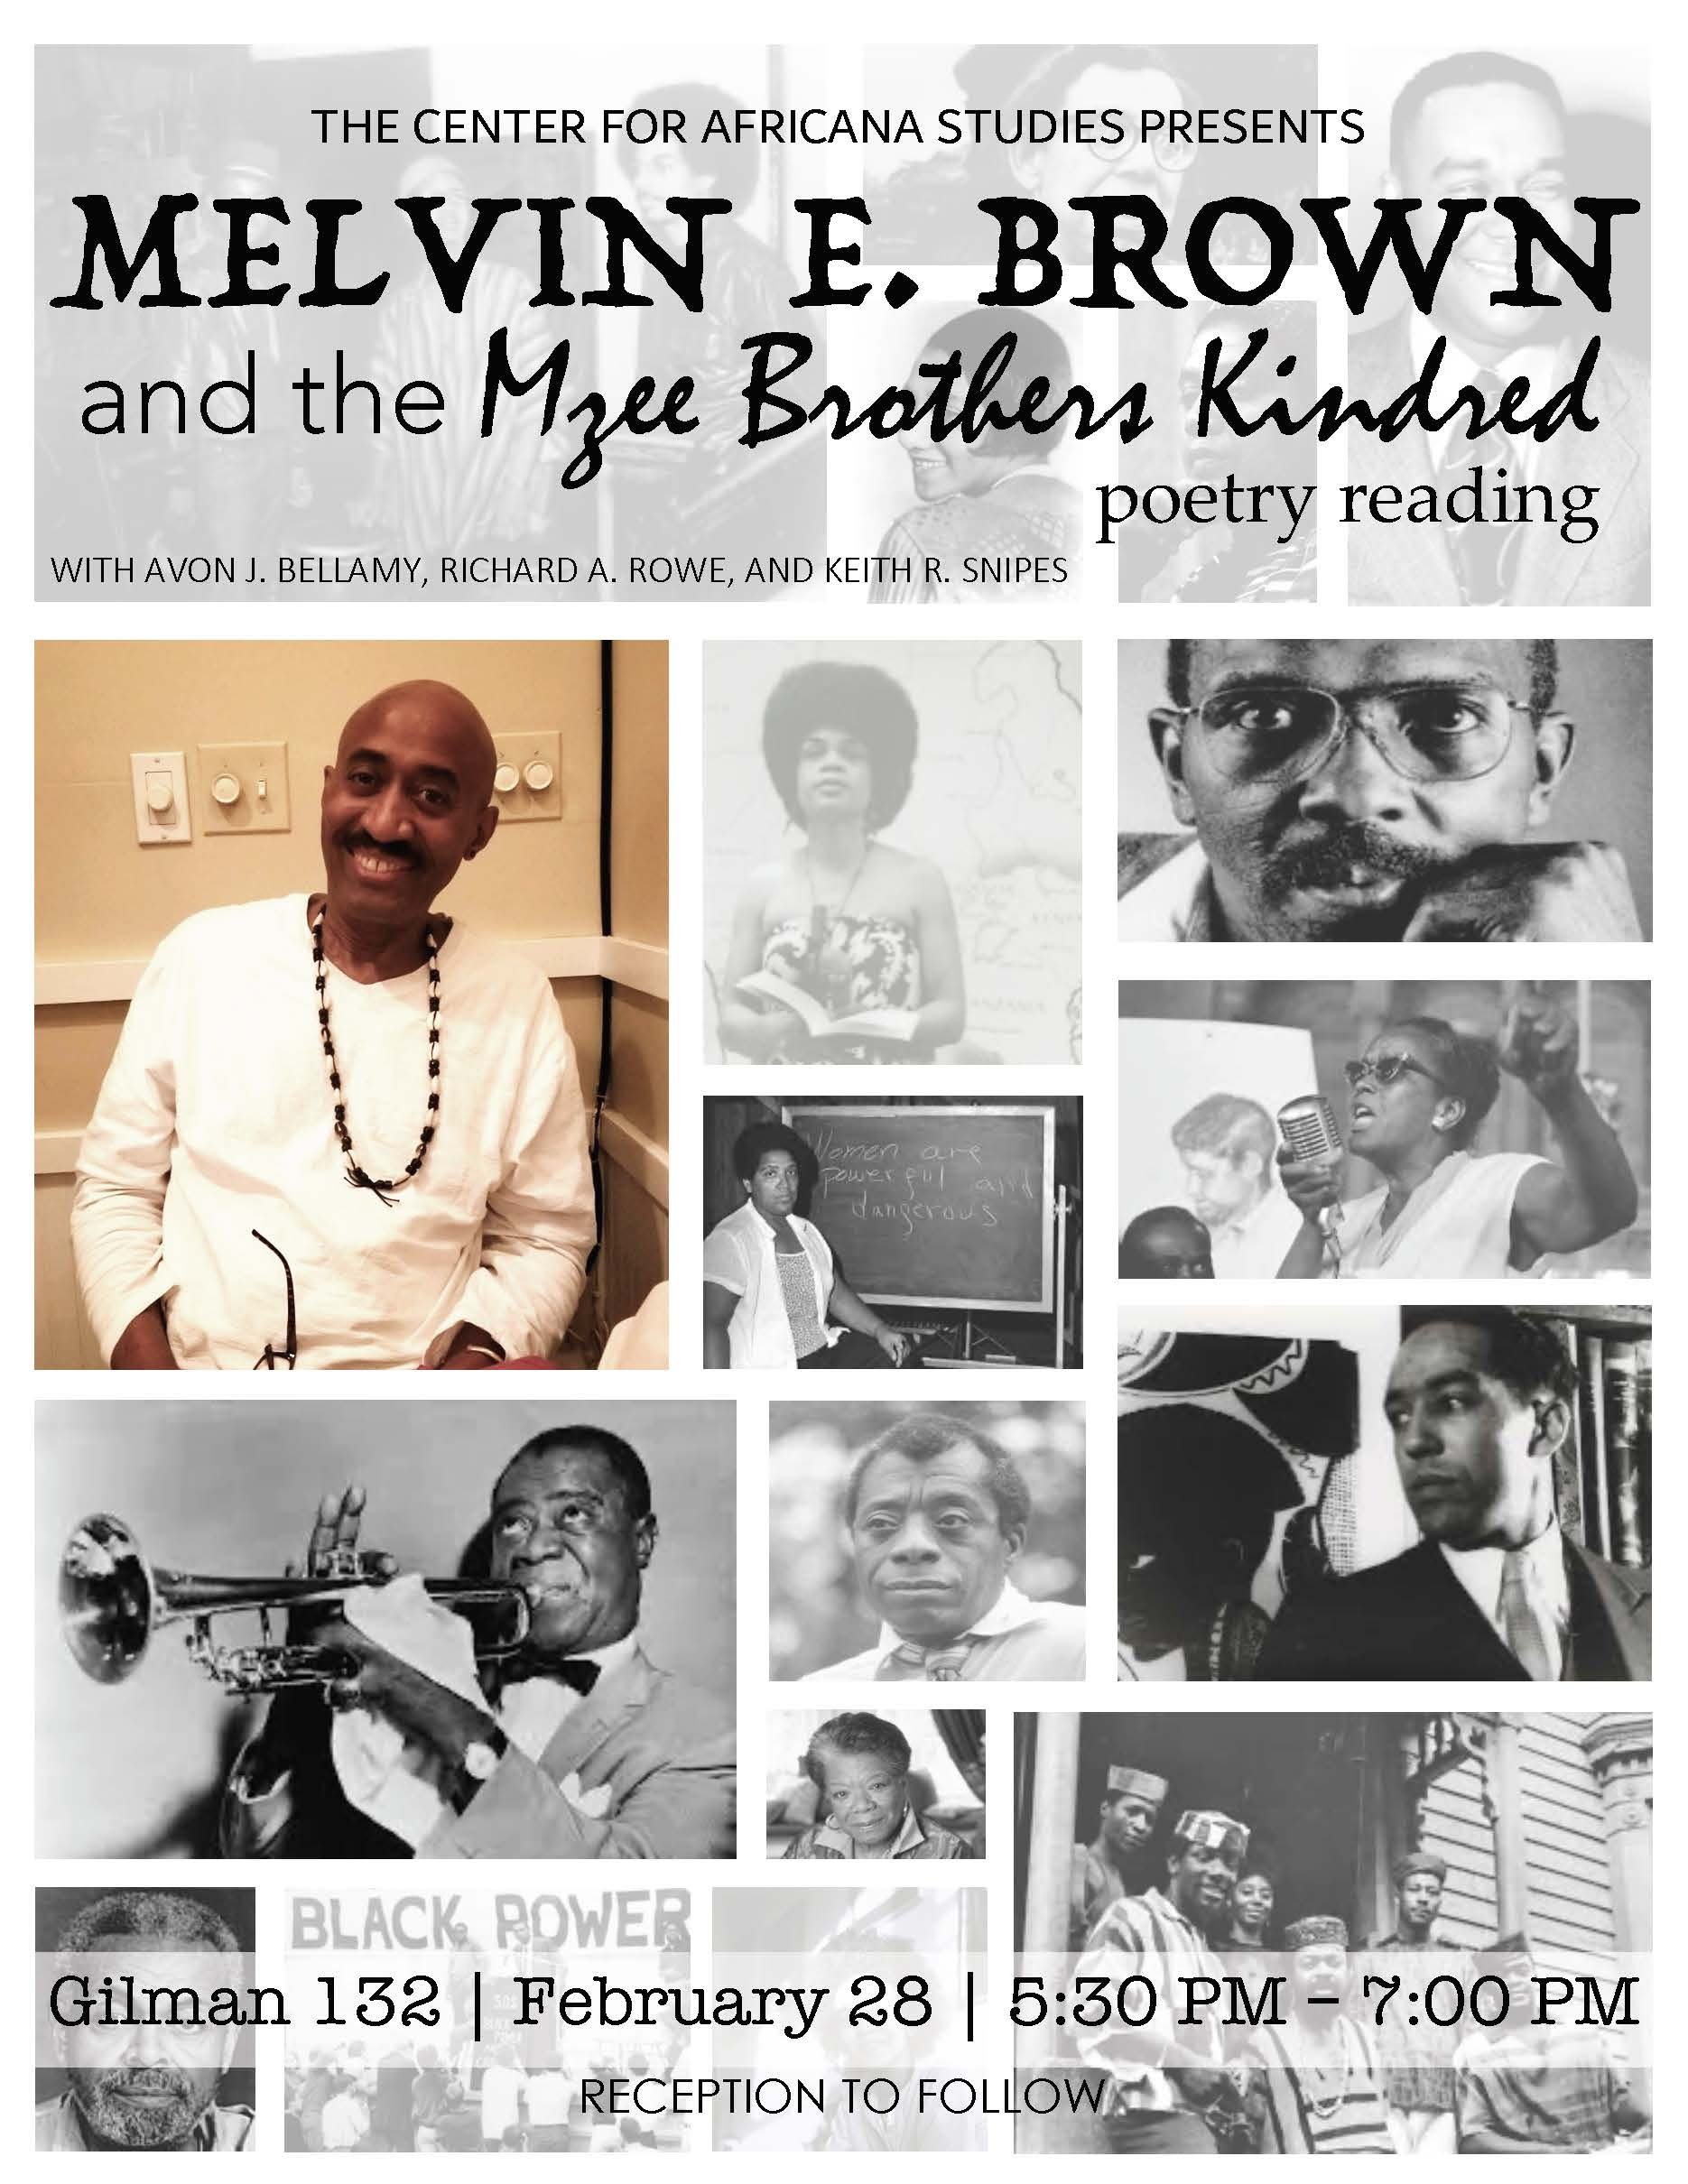 Melvin E Brown and the Mzee Brothers Kindred Poetry Reading